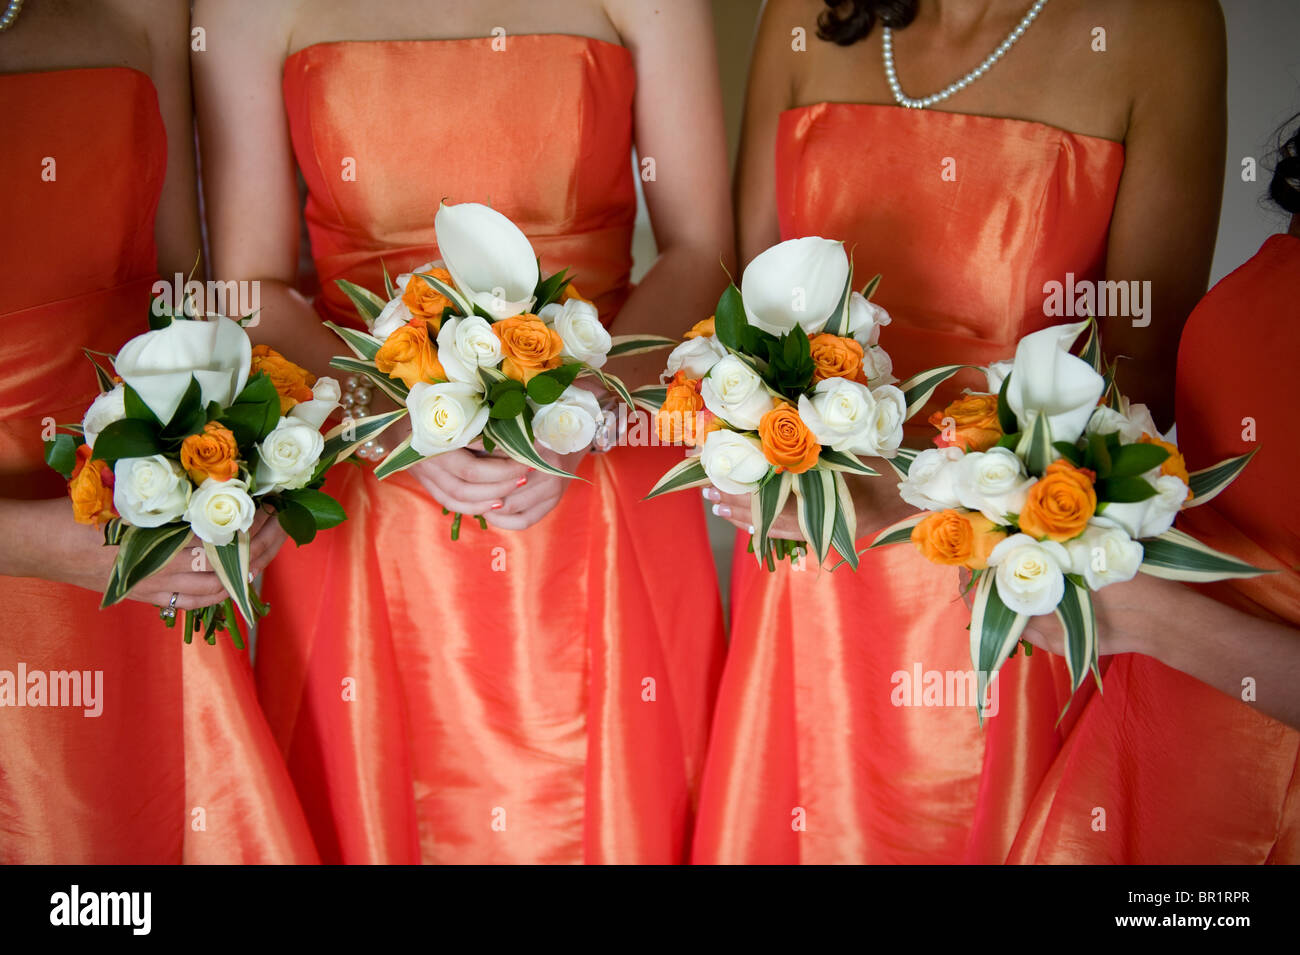 Bridesmaids Holding Wedding Bouquets Of Orange And White Roses Lilies